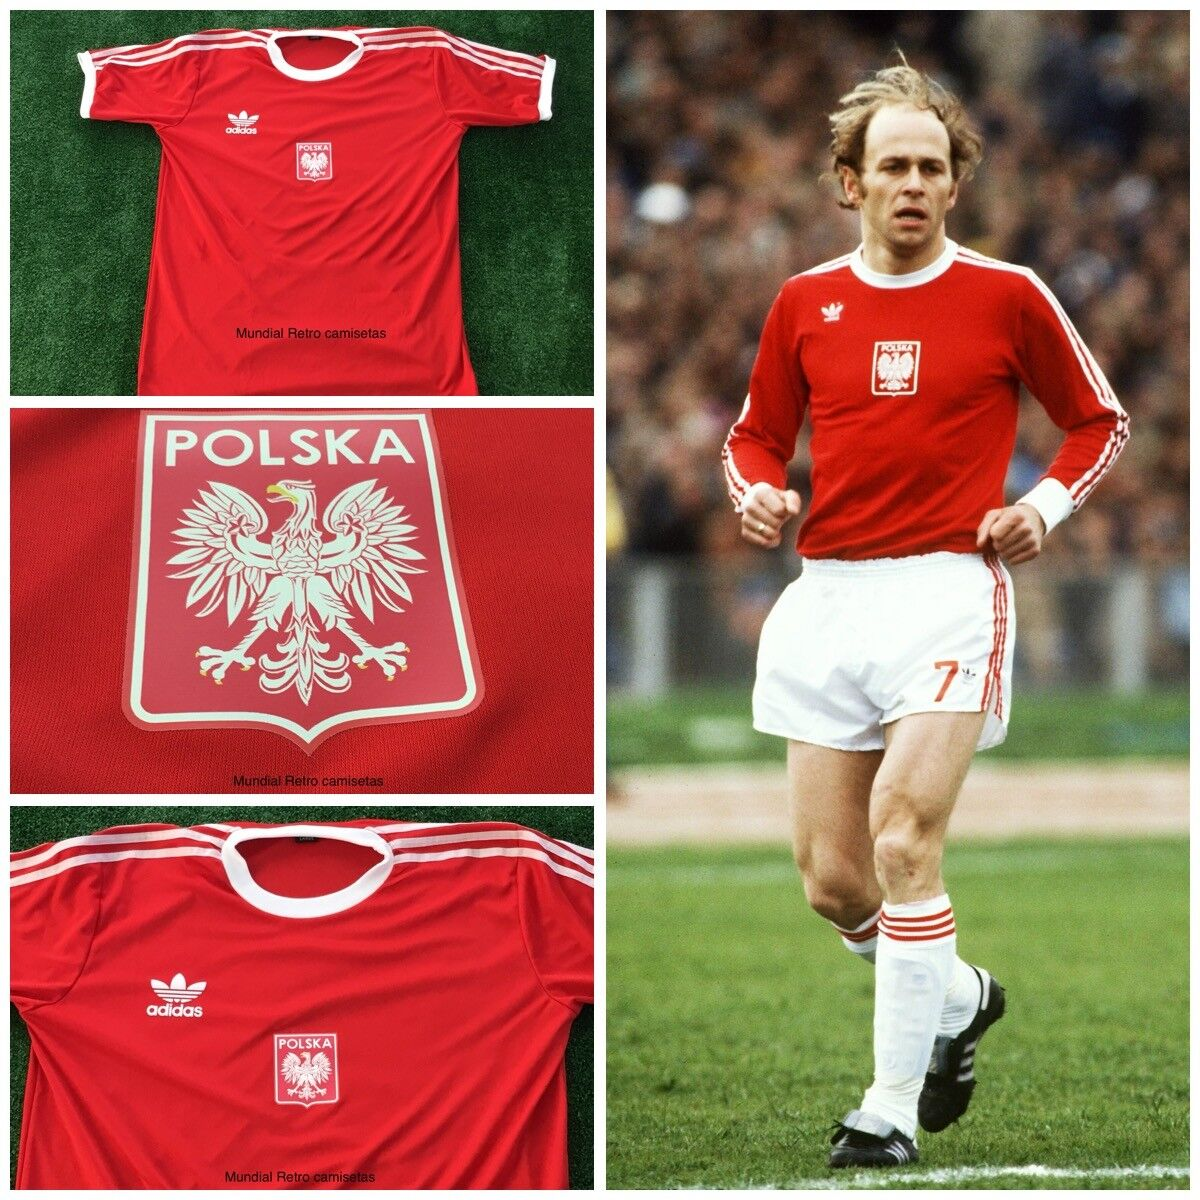 Polska World Cup 1978 retro jersey maglia camiseta (replica)